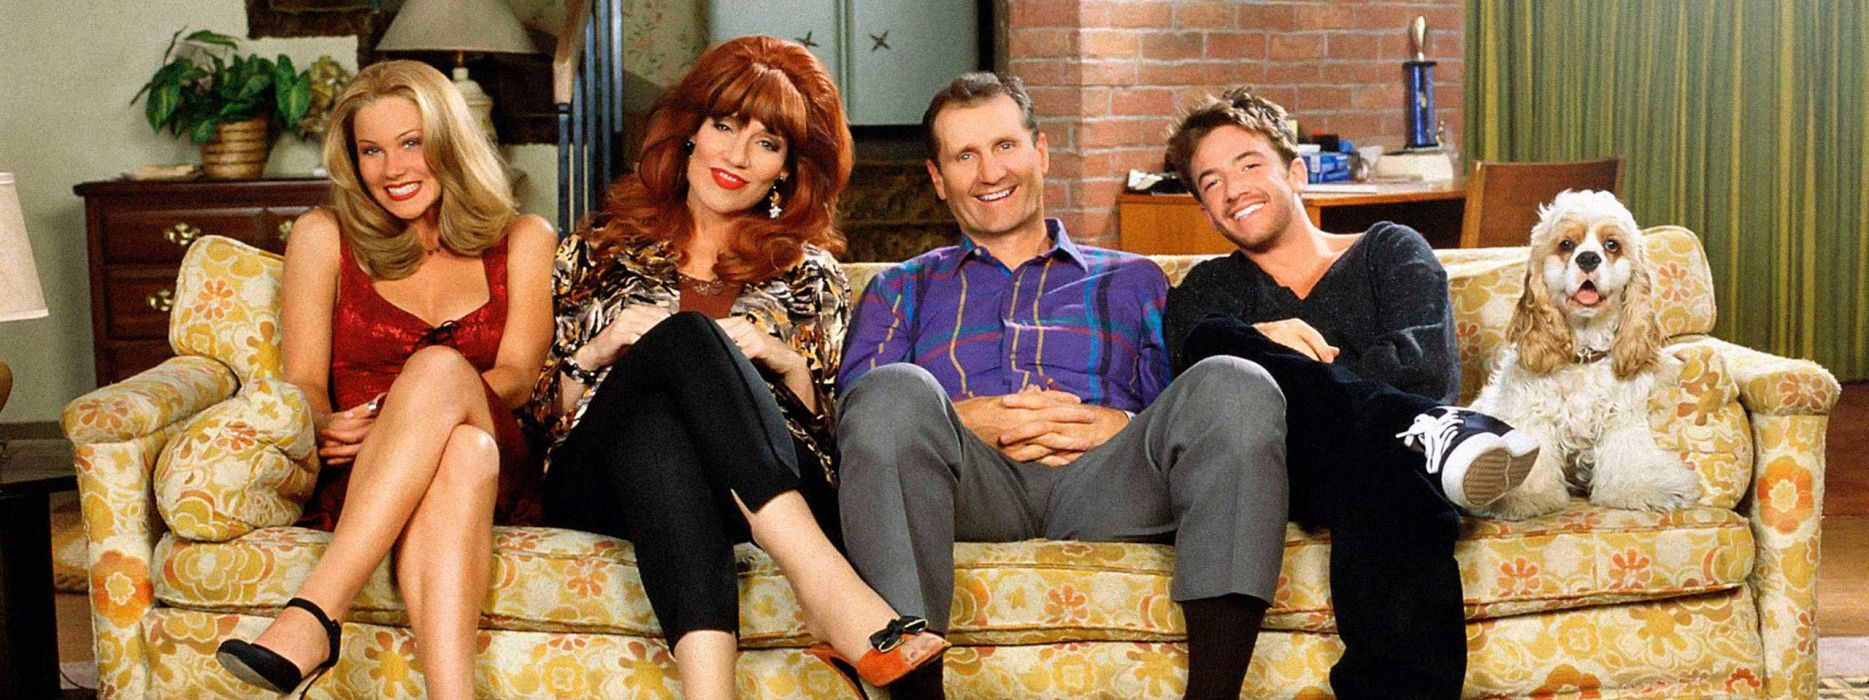 MARRIED-WITH-CHILDREN comedy sitcom series television married children wallpaper